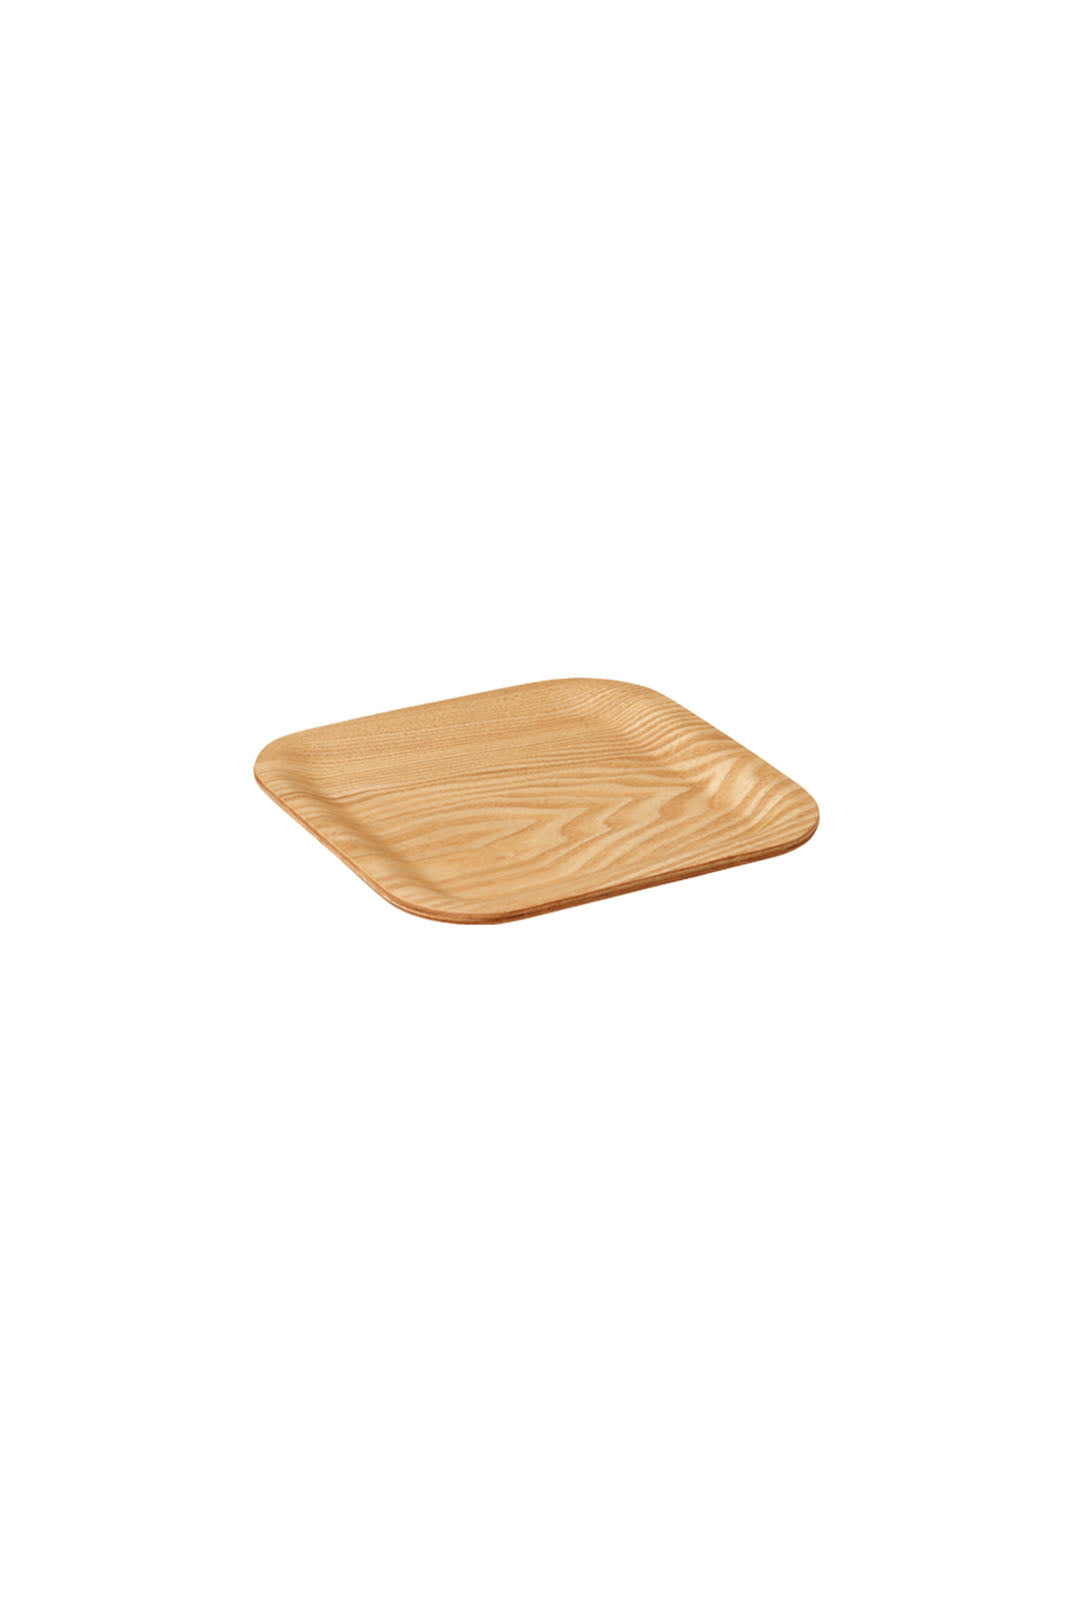 Kinto - Nonslip Square Tray - 160mm - Willow